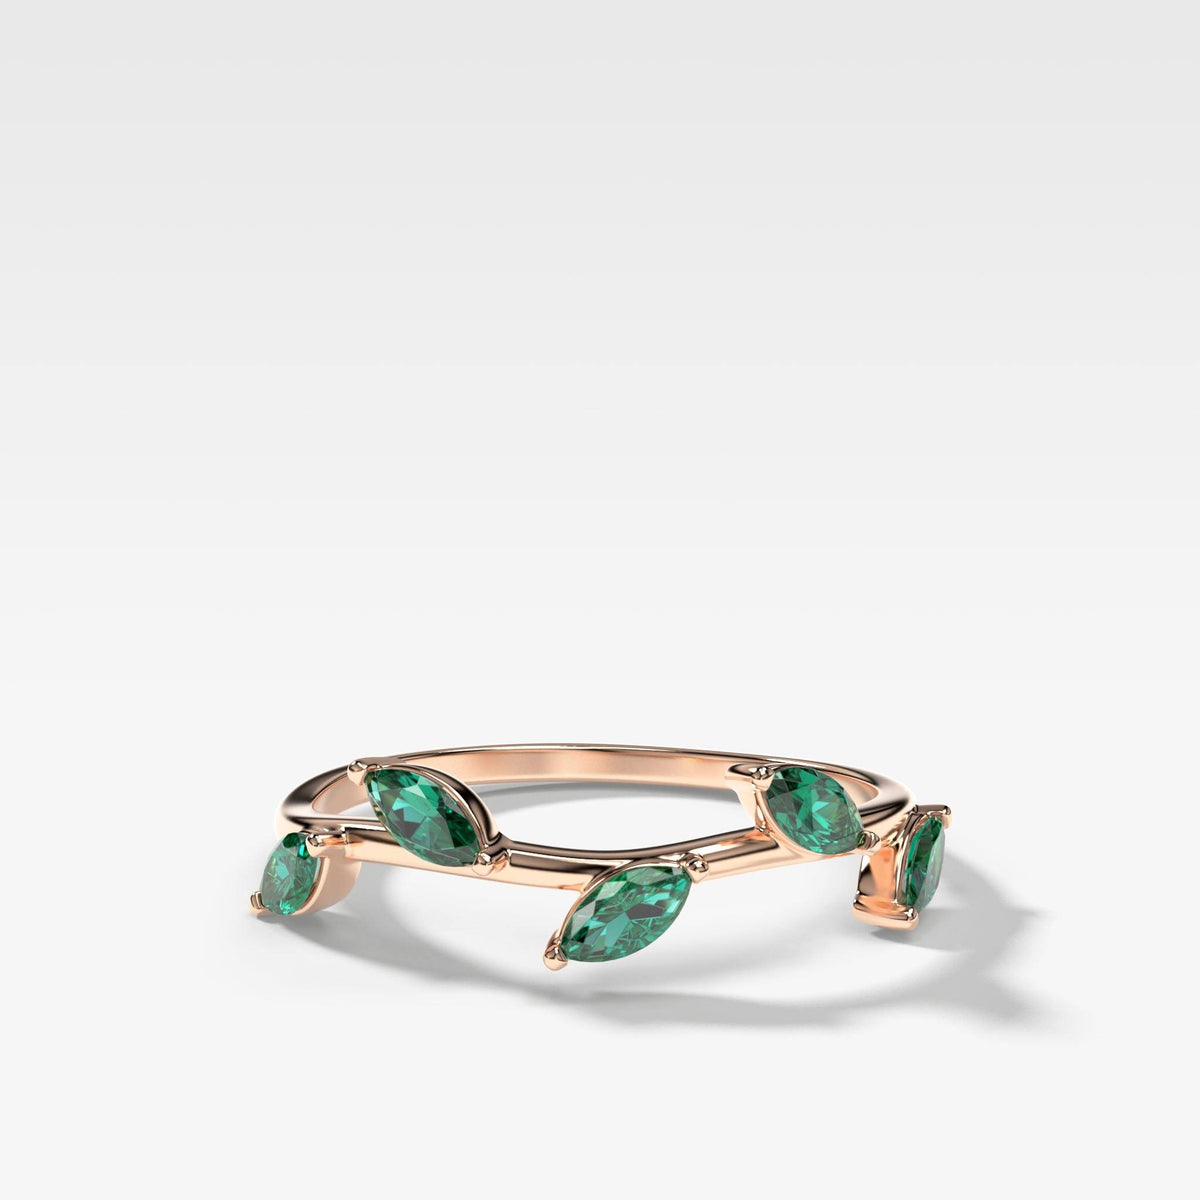 Laurel Marquise Band With Green Emeralds In Rose Gold By Good Stone